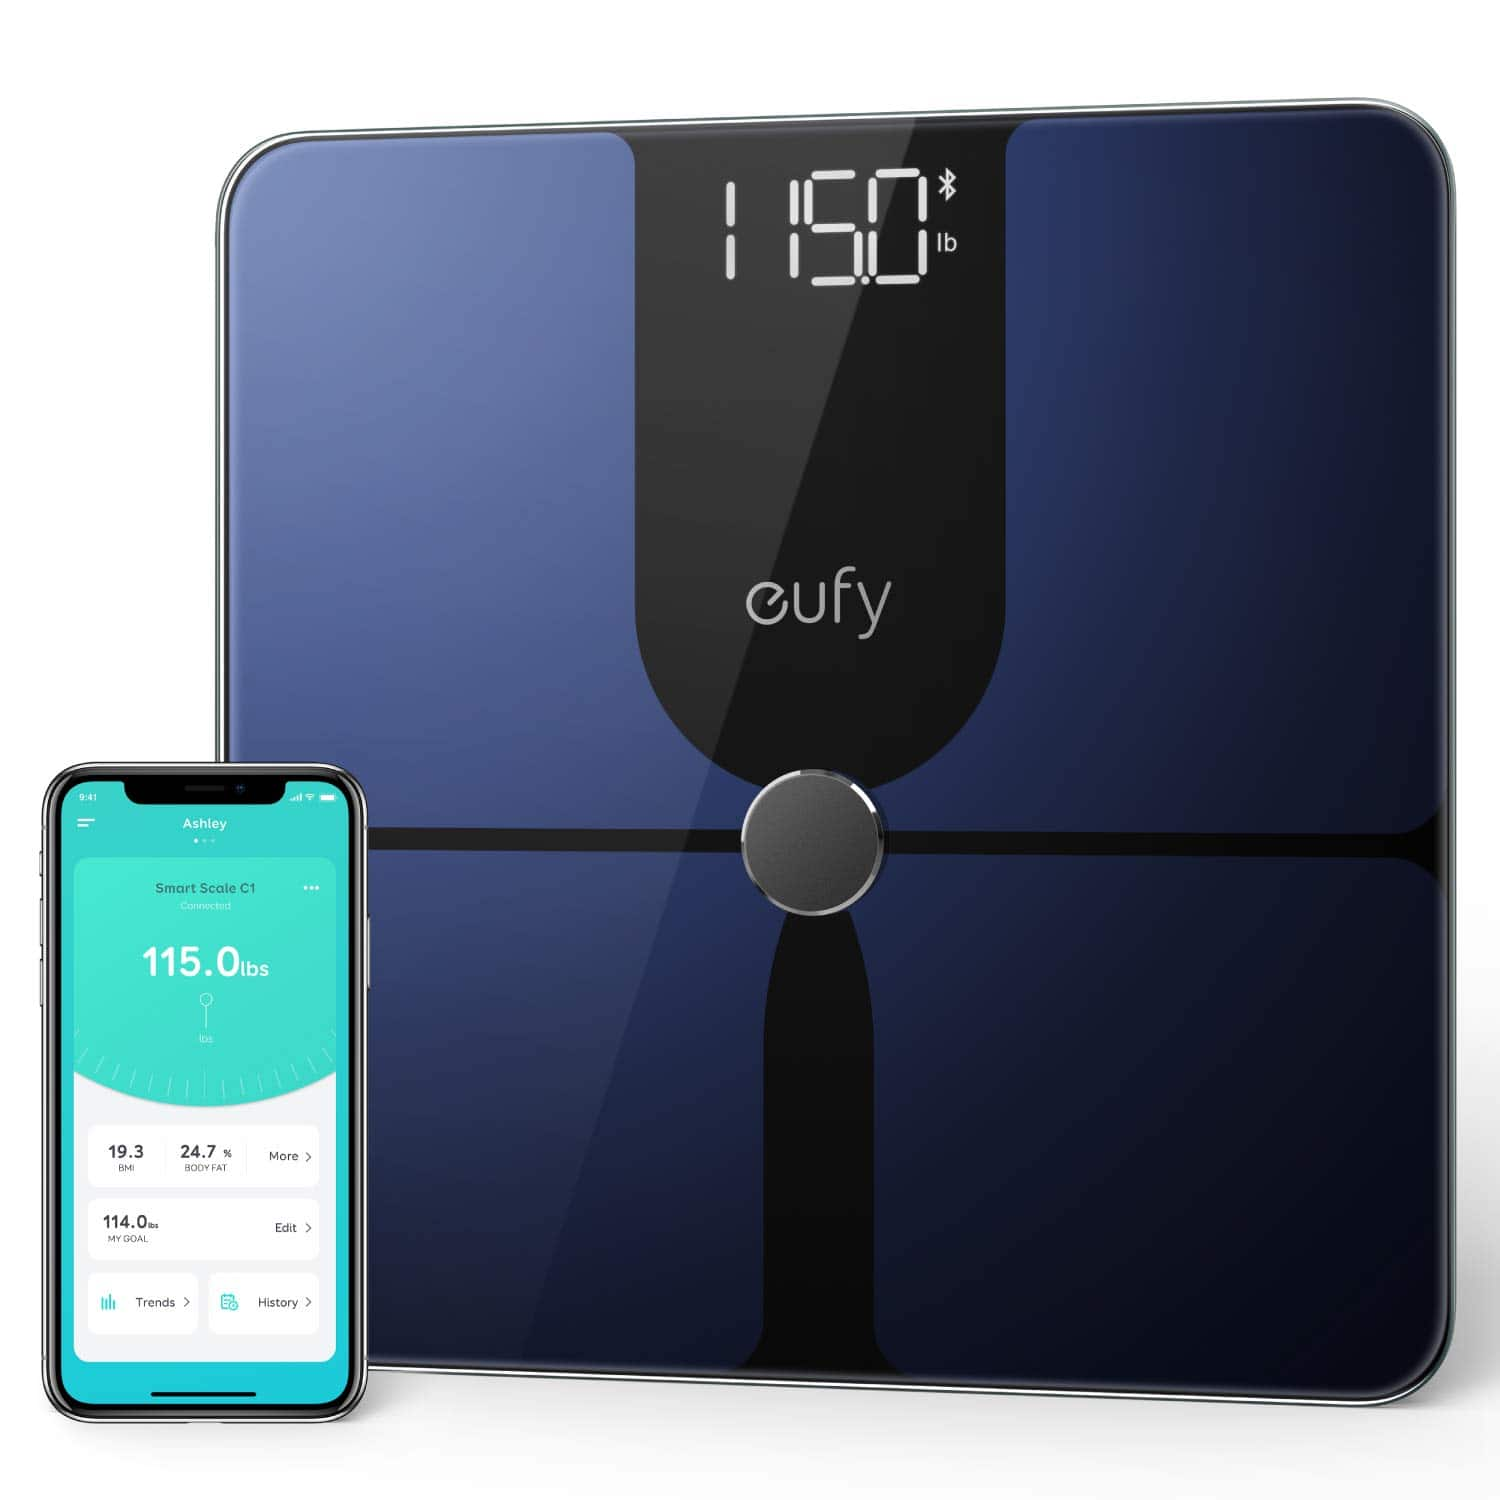 eufy by Anker, Smart Scale P1 with Bluetooth, Body Fat Scale, Wireless Digital Bathroom Scale, 14 Measurements, Weight/Body Fat/BMI, Fitness Body Composition Analysis $35.99